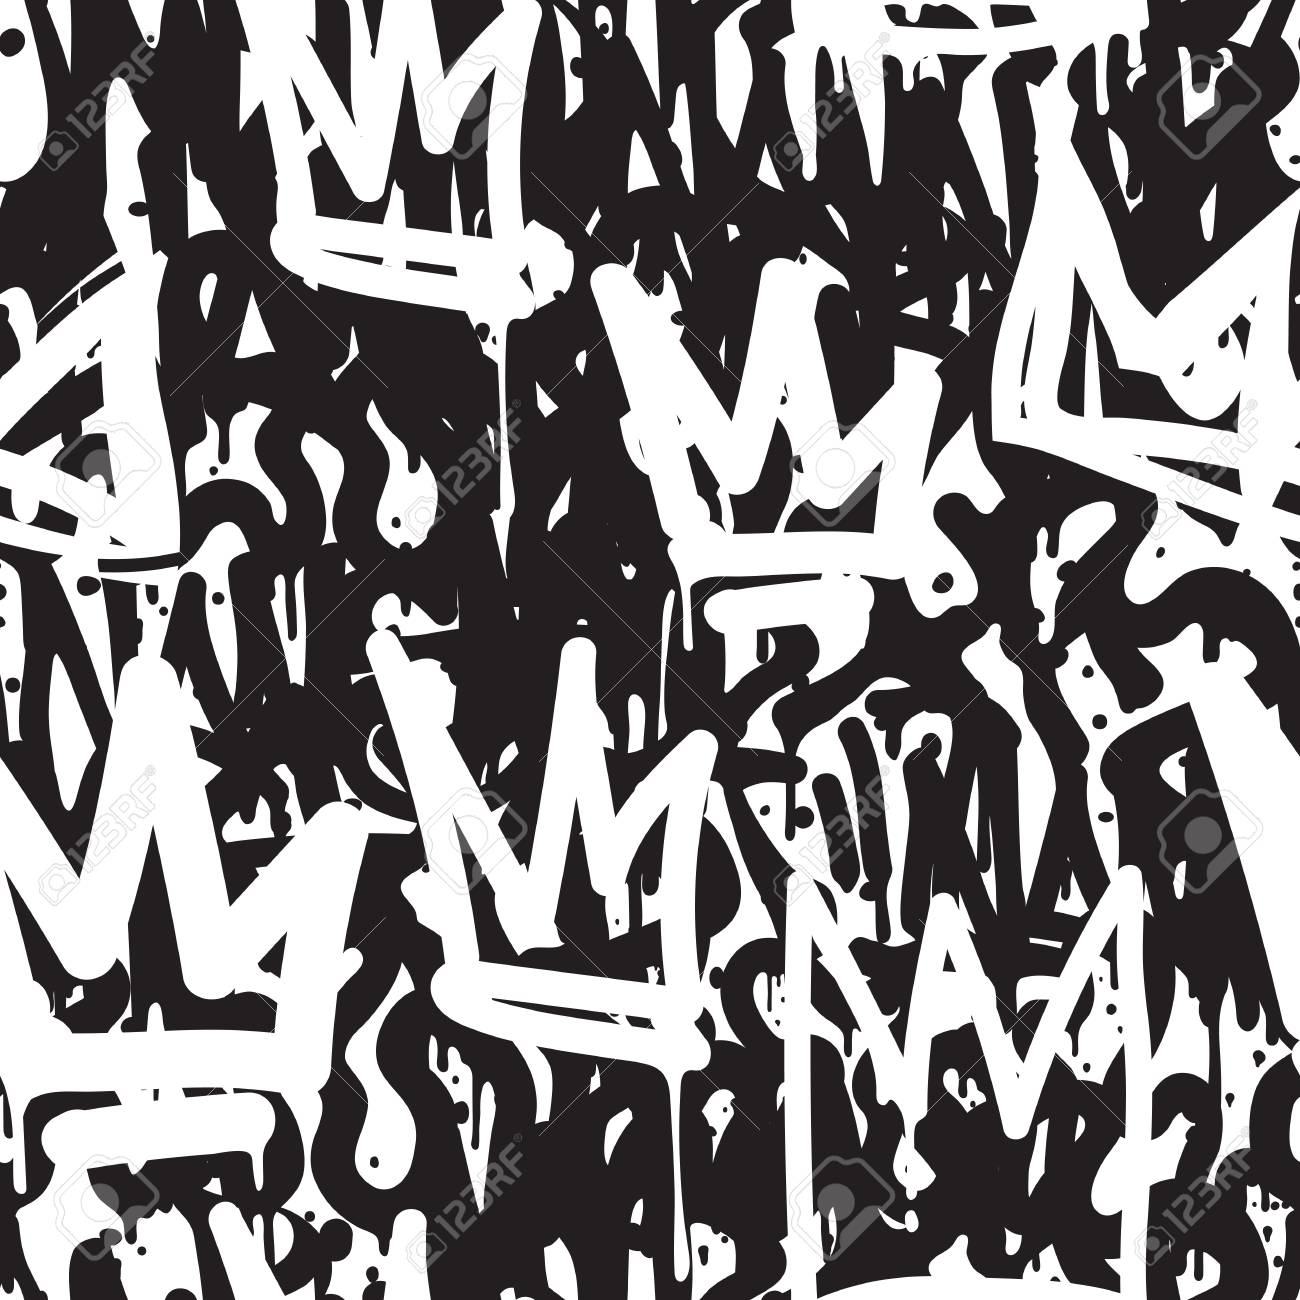 Fashion black and white graffiti hand drawing design texture in hip hop street art style for t shirt skateboard textile